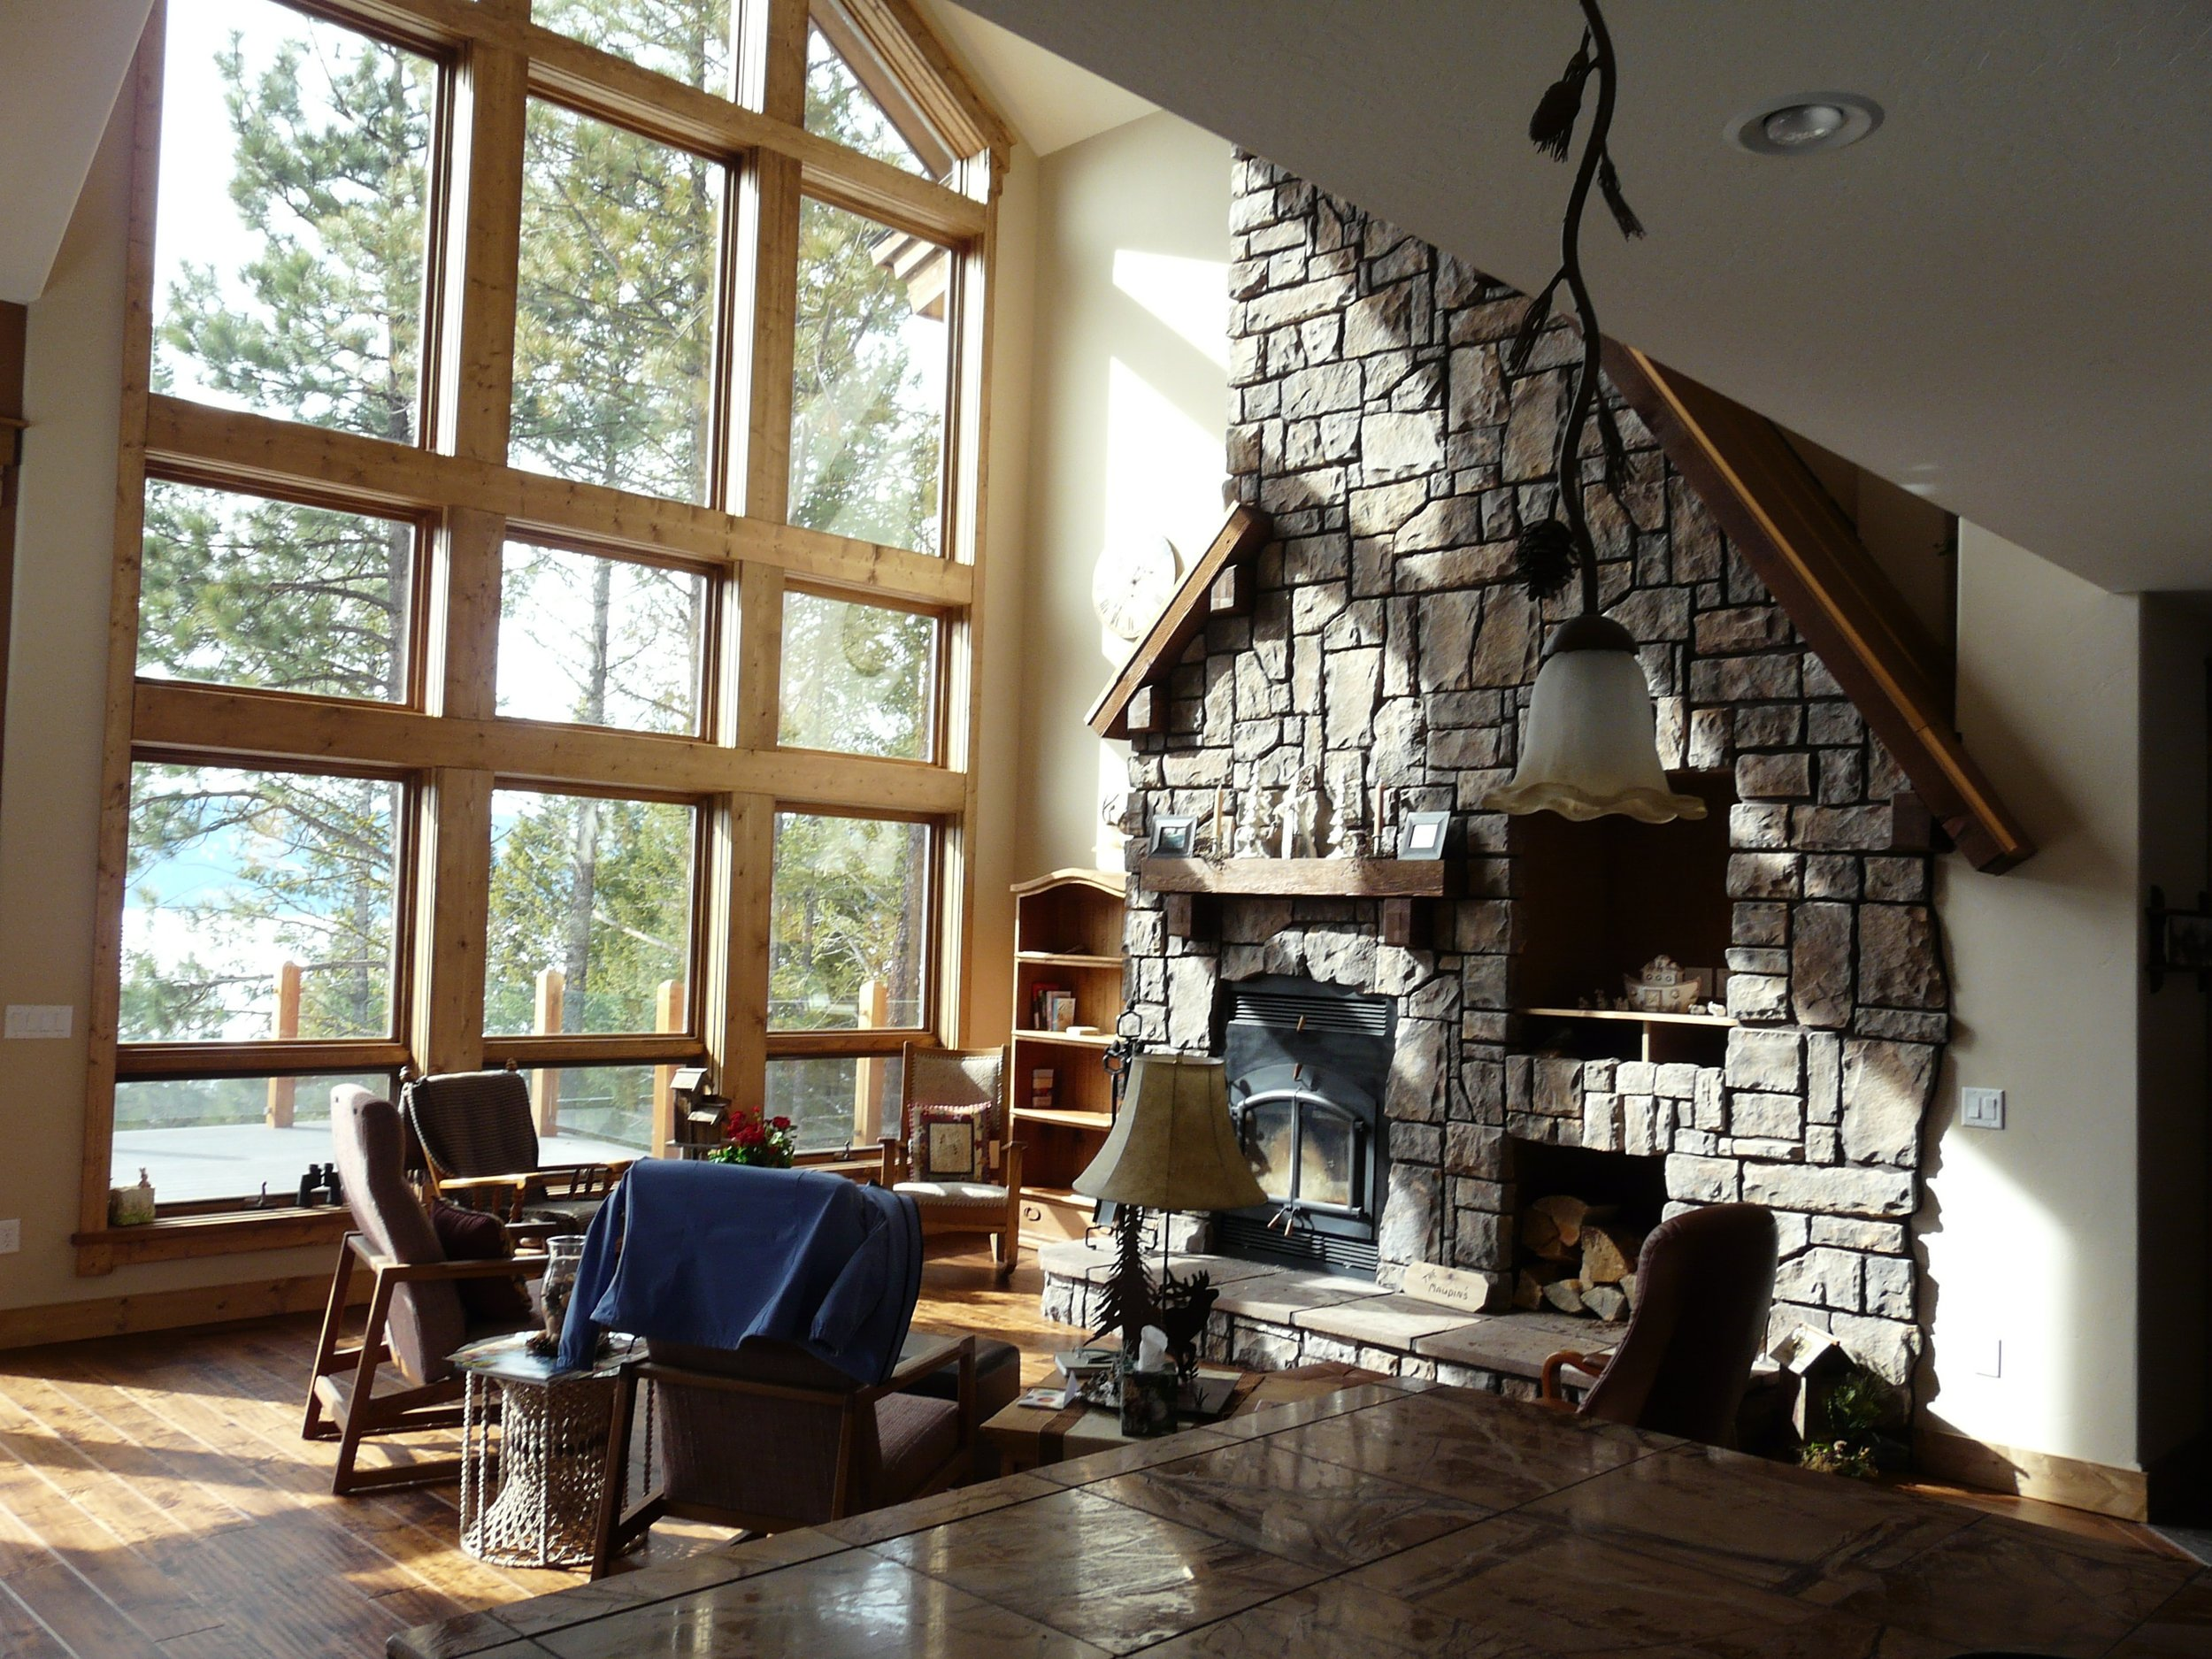 Oine lakes Fireplace.jpg